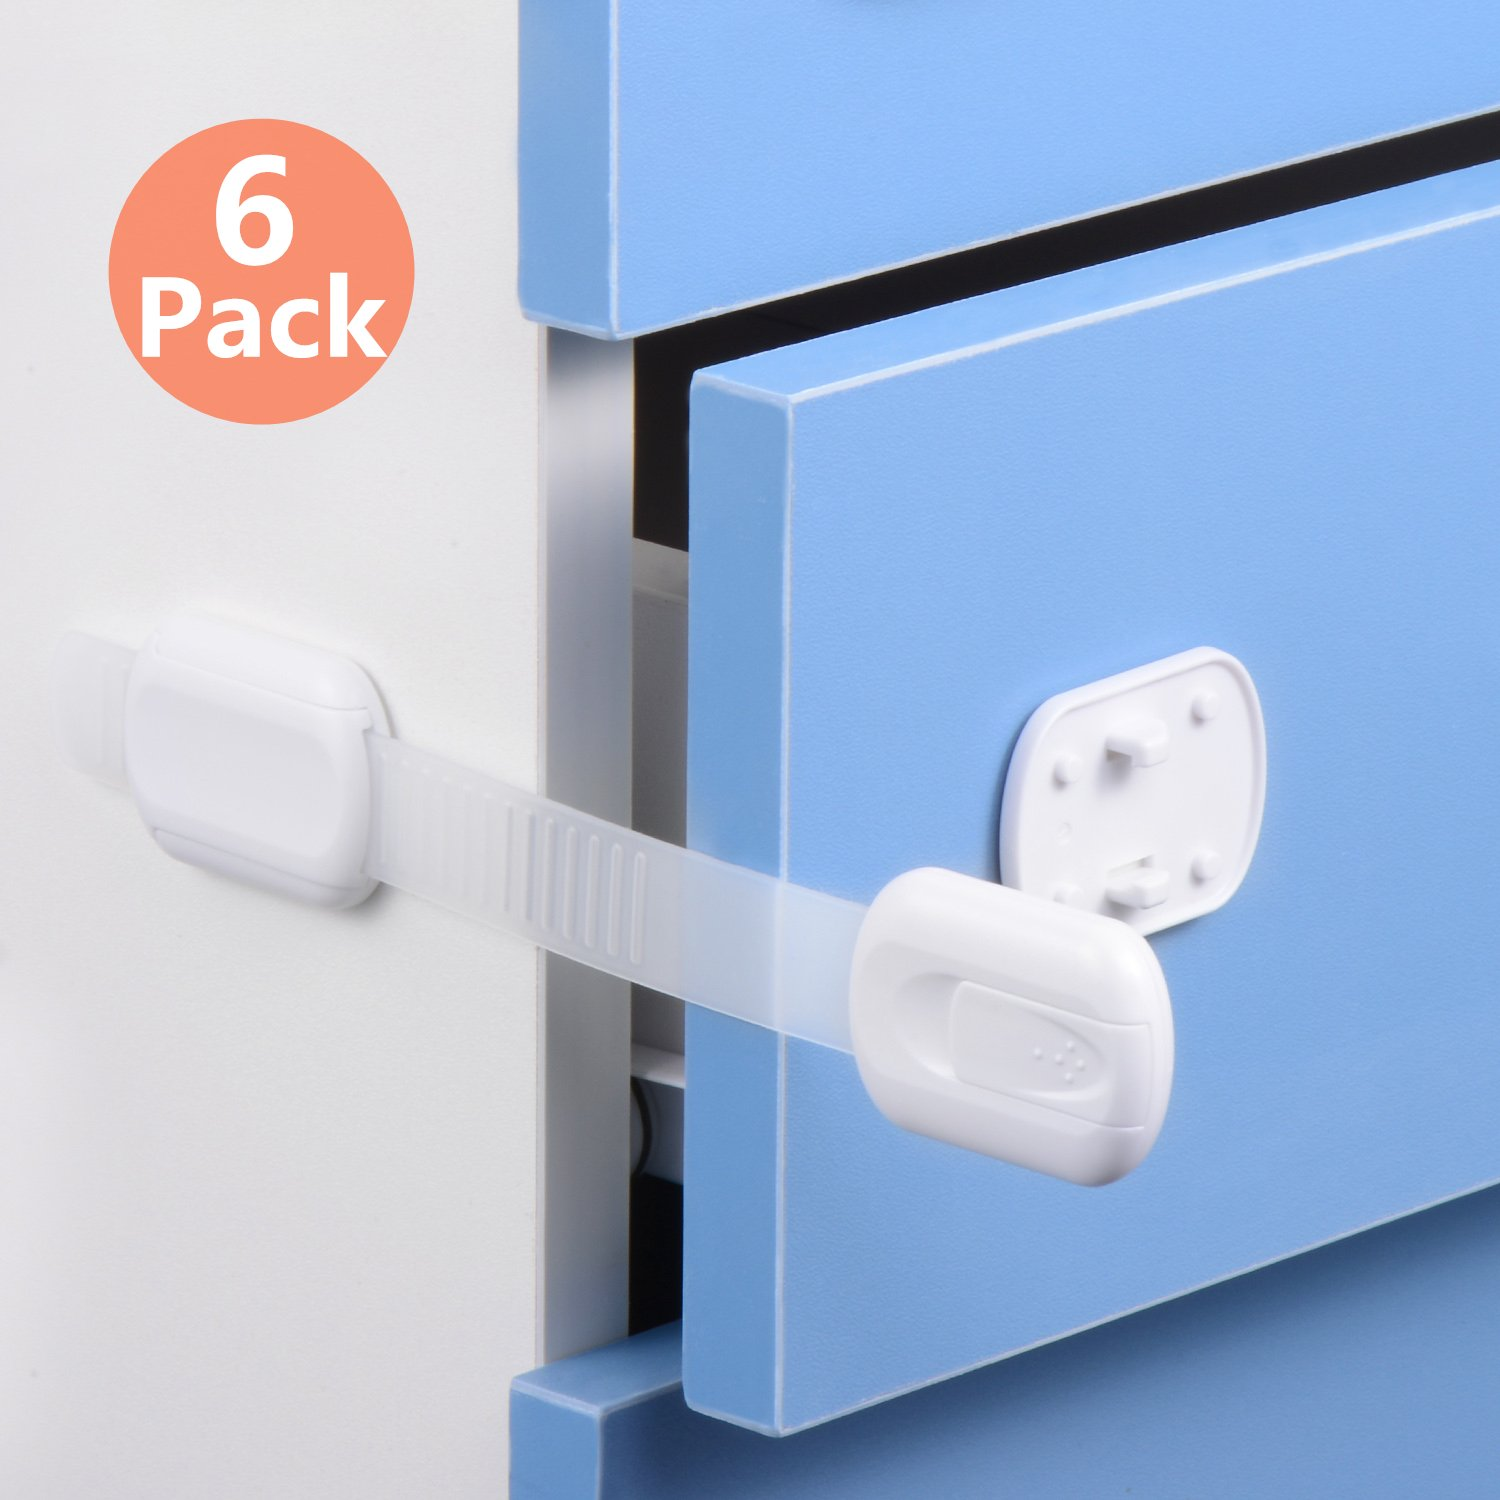 Child Safety Locks,Baby Proof Cabinets Locks,Adjustable Strap and Latch System with  Adhesive,For Drawers, Appliances, Toilet Seat, Fridge and Oven, No Tools or Drilling (6 Pack White)